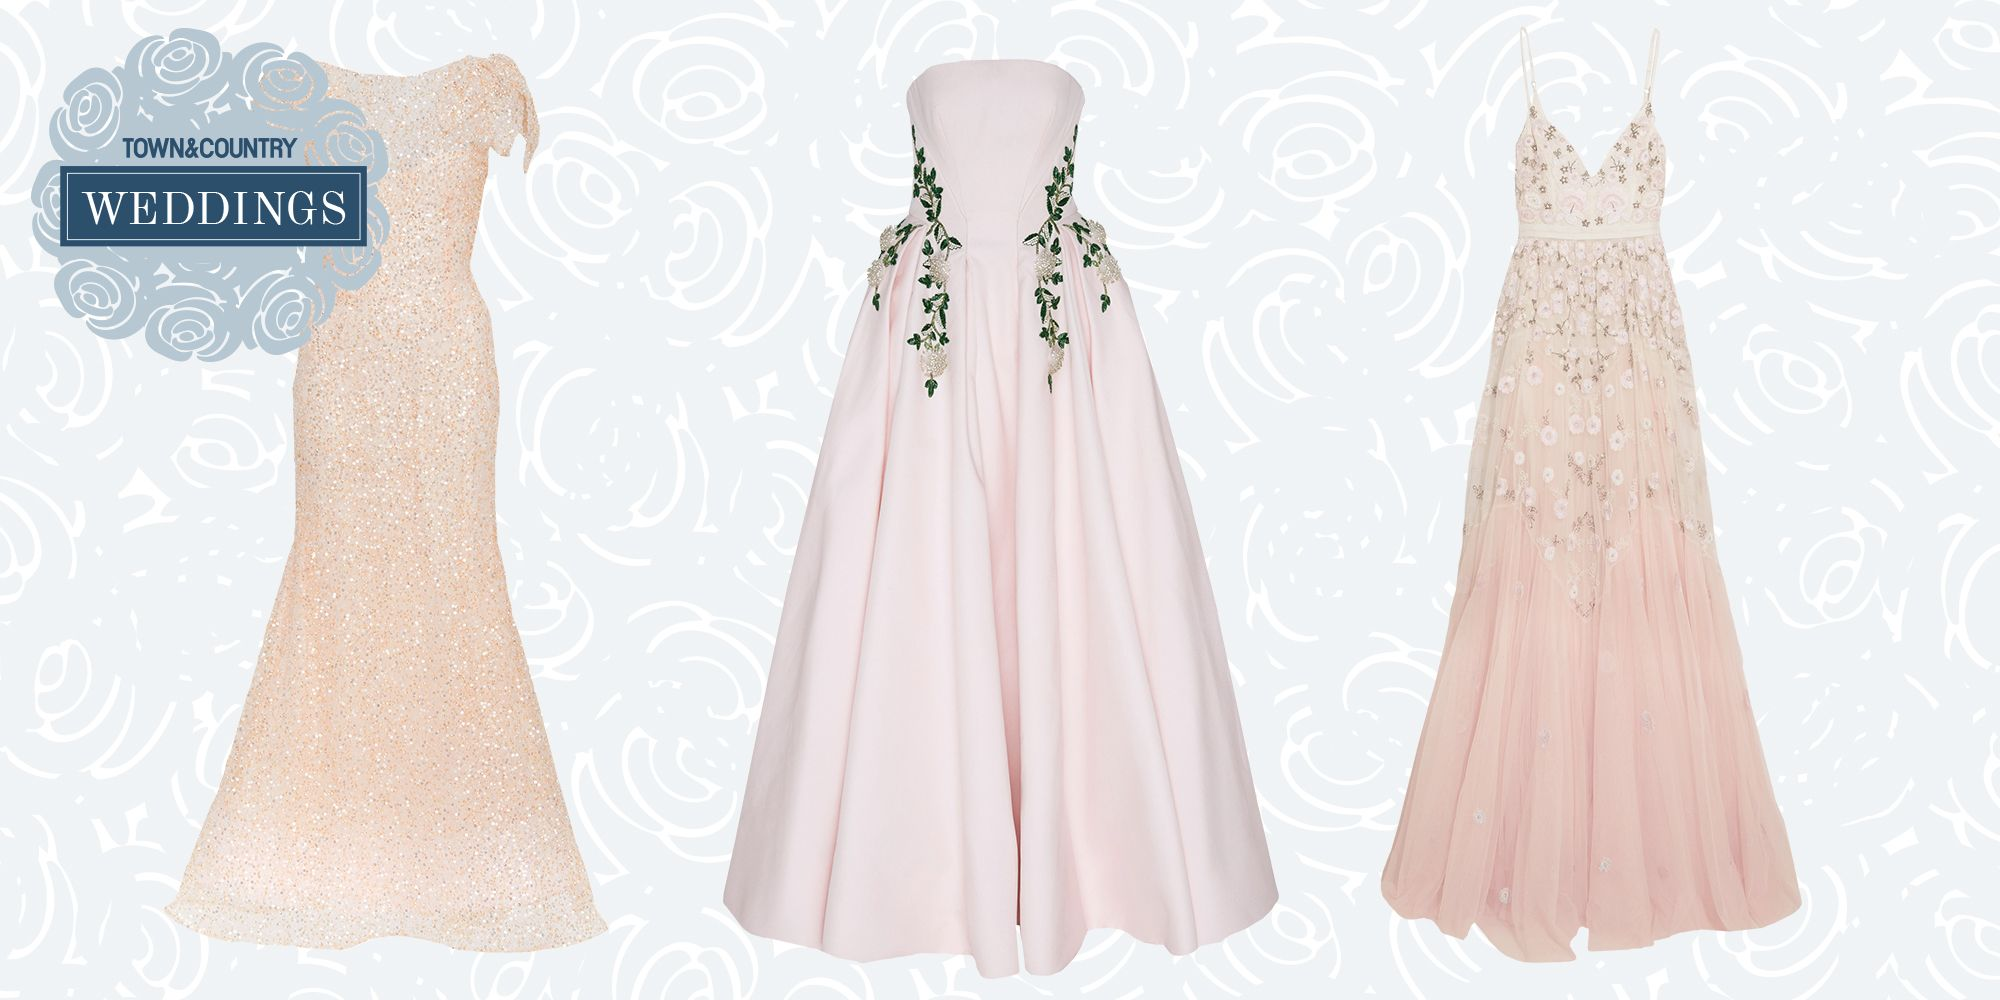 10 Perfectly Pink Wedding Dresses for the Unconventional Bride